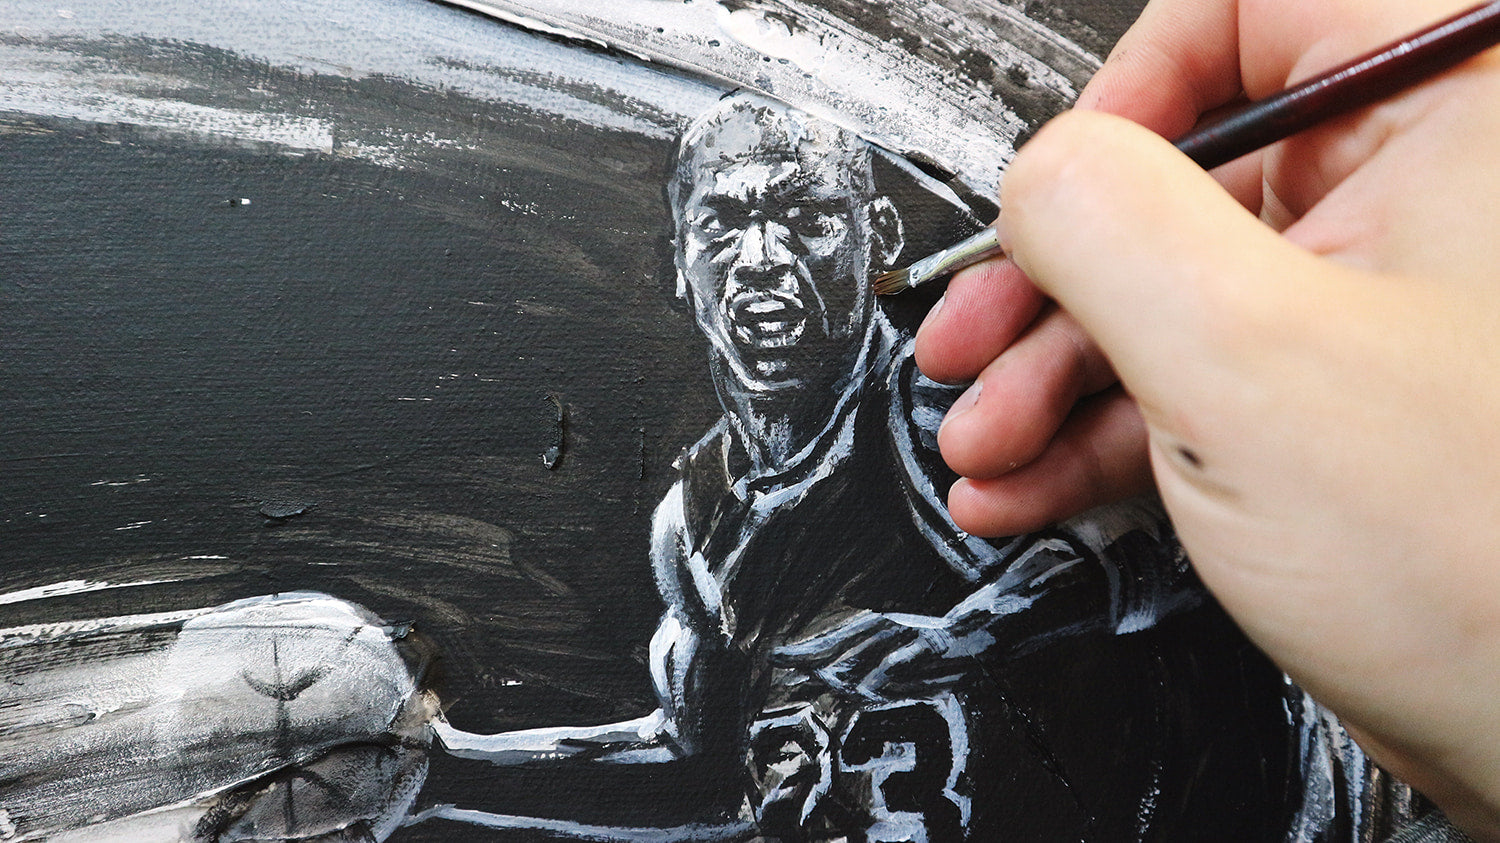 painting of michael jordan from the last dance chicago bulls espn documentary on netflix, by sports artist david roman art